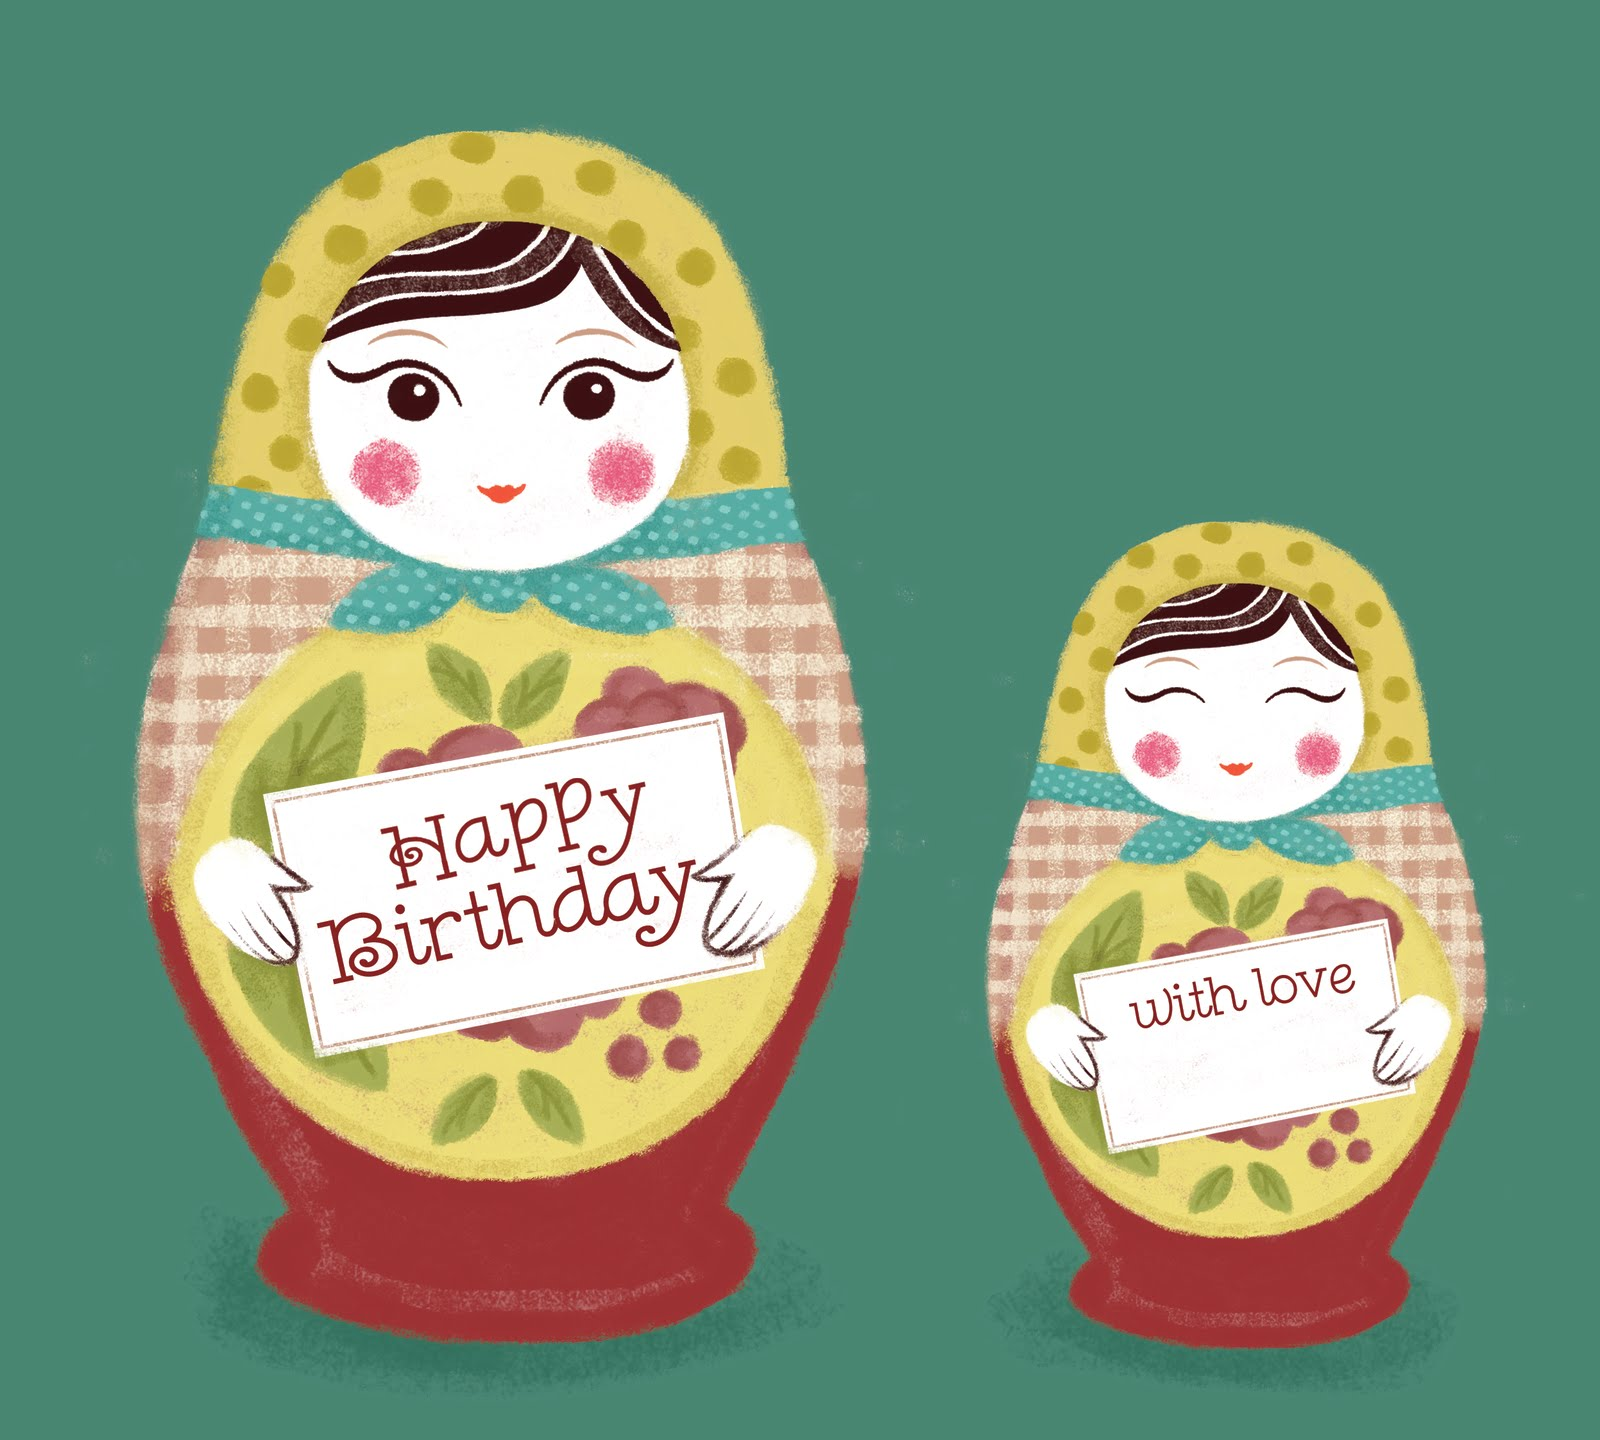 Russian Birthday Cards http://2dscrumptious.blogspot.com/2011/06/russian-here-russian-there.html